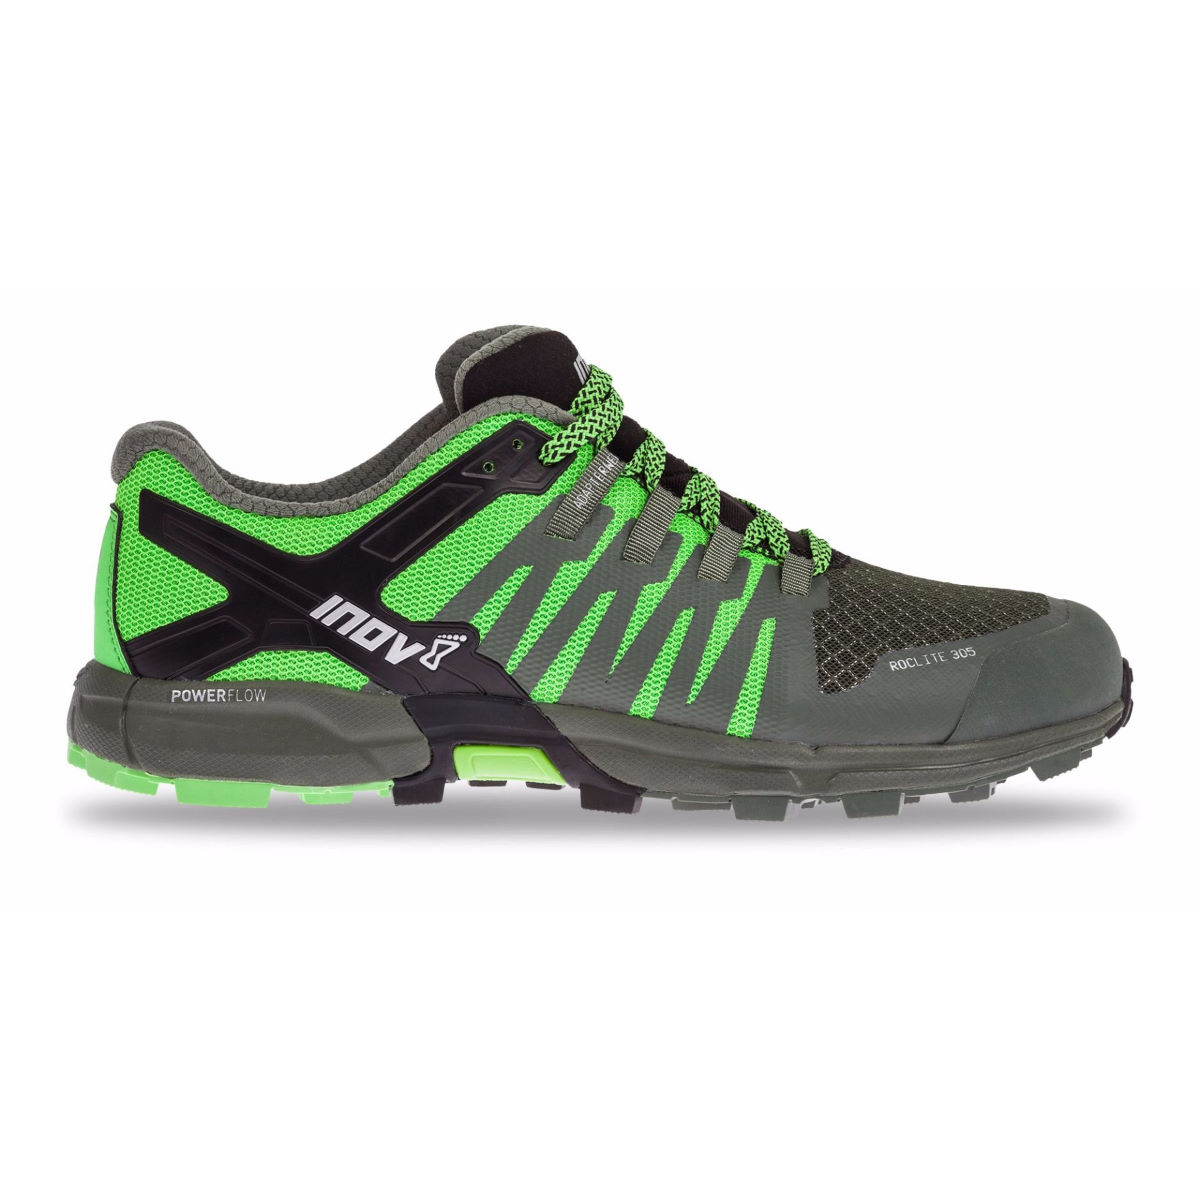 Chaussures Inov-8 Roclite 305 - UK 11 GREEN/BLACK